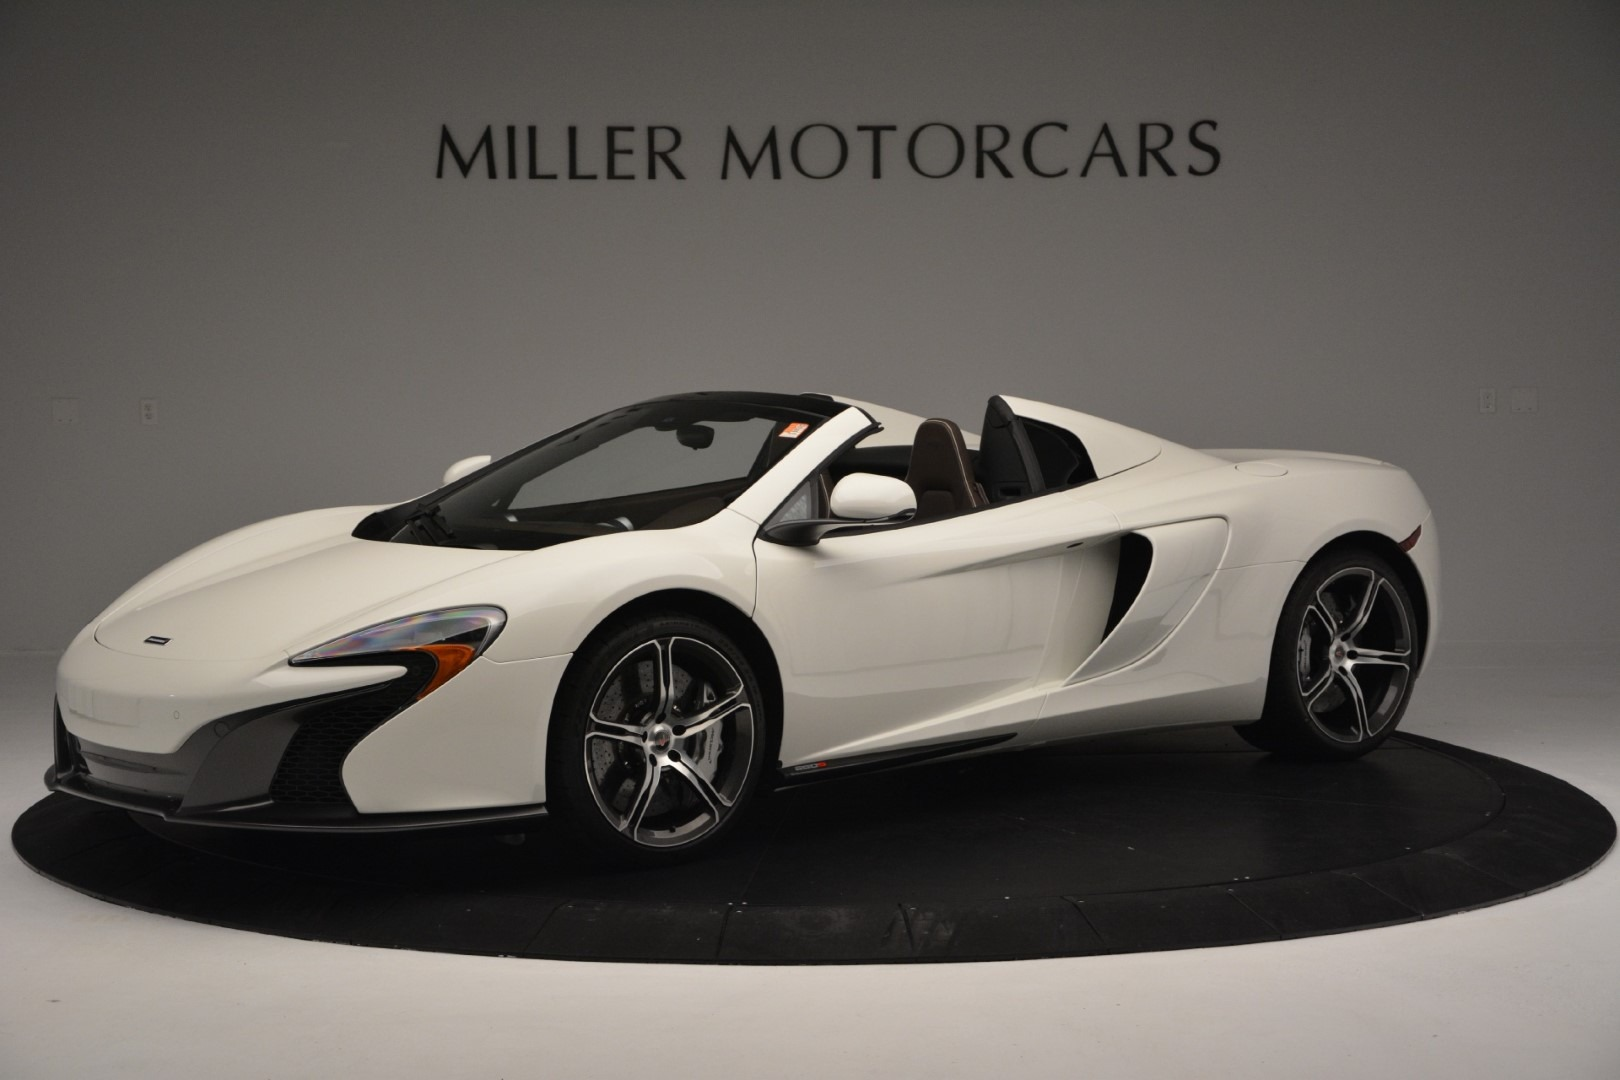 Used 2015 McLaren 650S Convertible for sale Sold at Aston Martin of Greenwich in Greenwich CT 06830 1